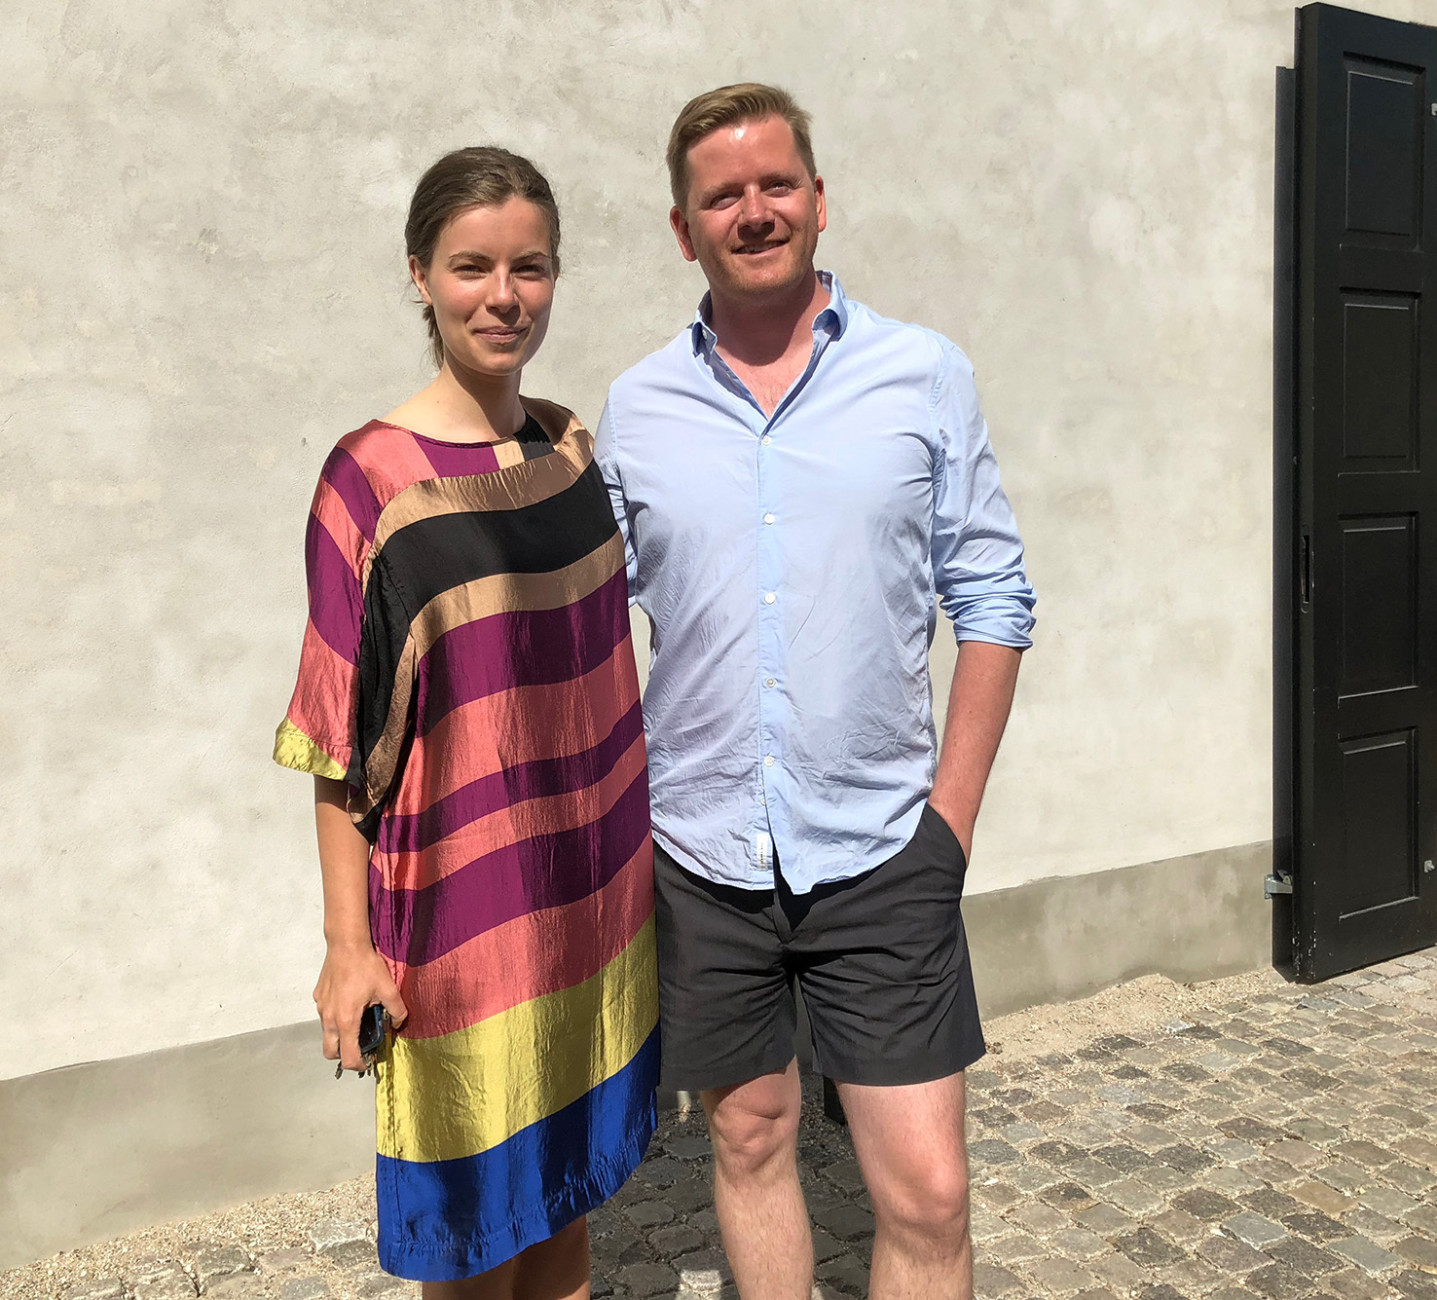 """Together with the project manager of the Noma, Aurora Lea, David Thulstrup has set up """"Noma 2.0""""."""